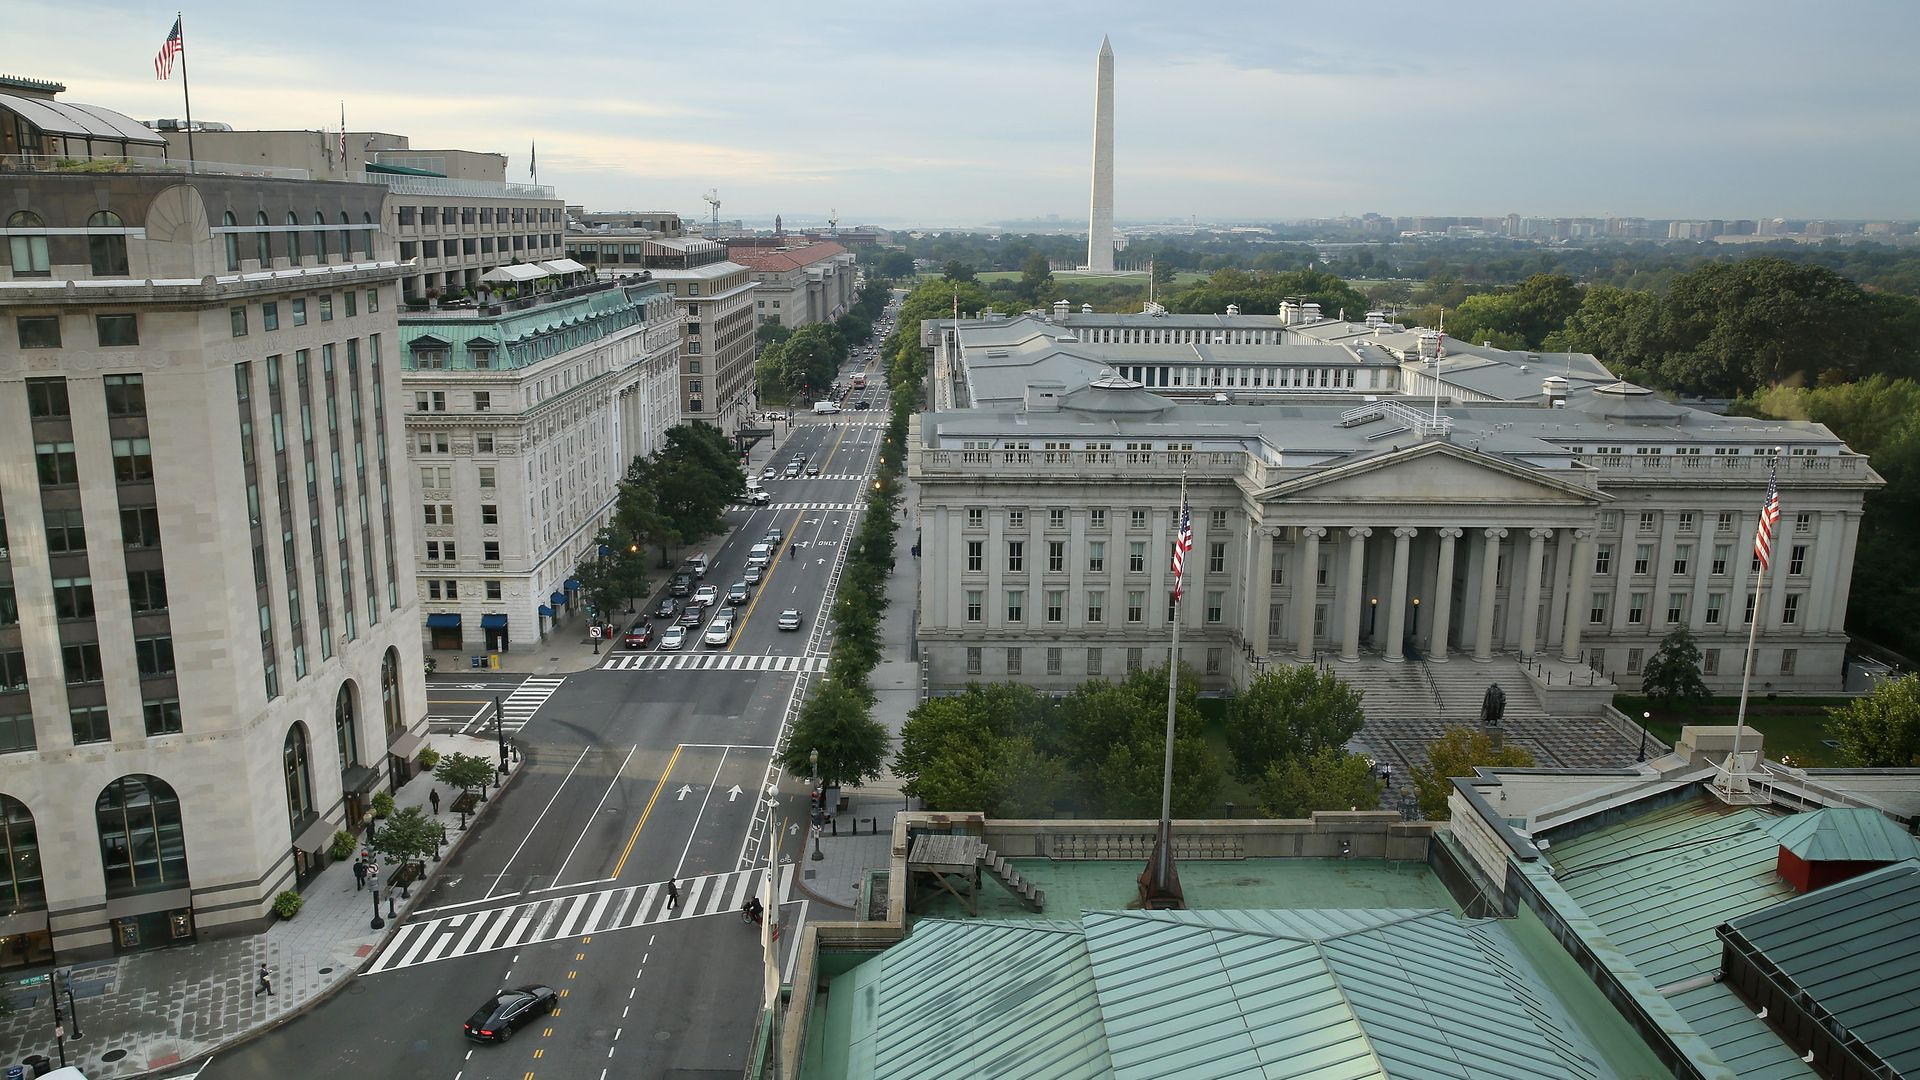 This image is a birds-eye view of the Treasury Building and the street next to it in DC. The Washington monument is seen in the distance.